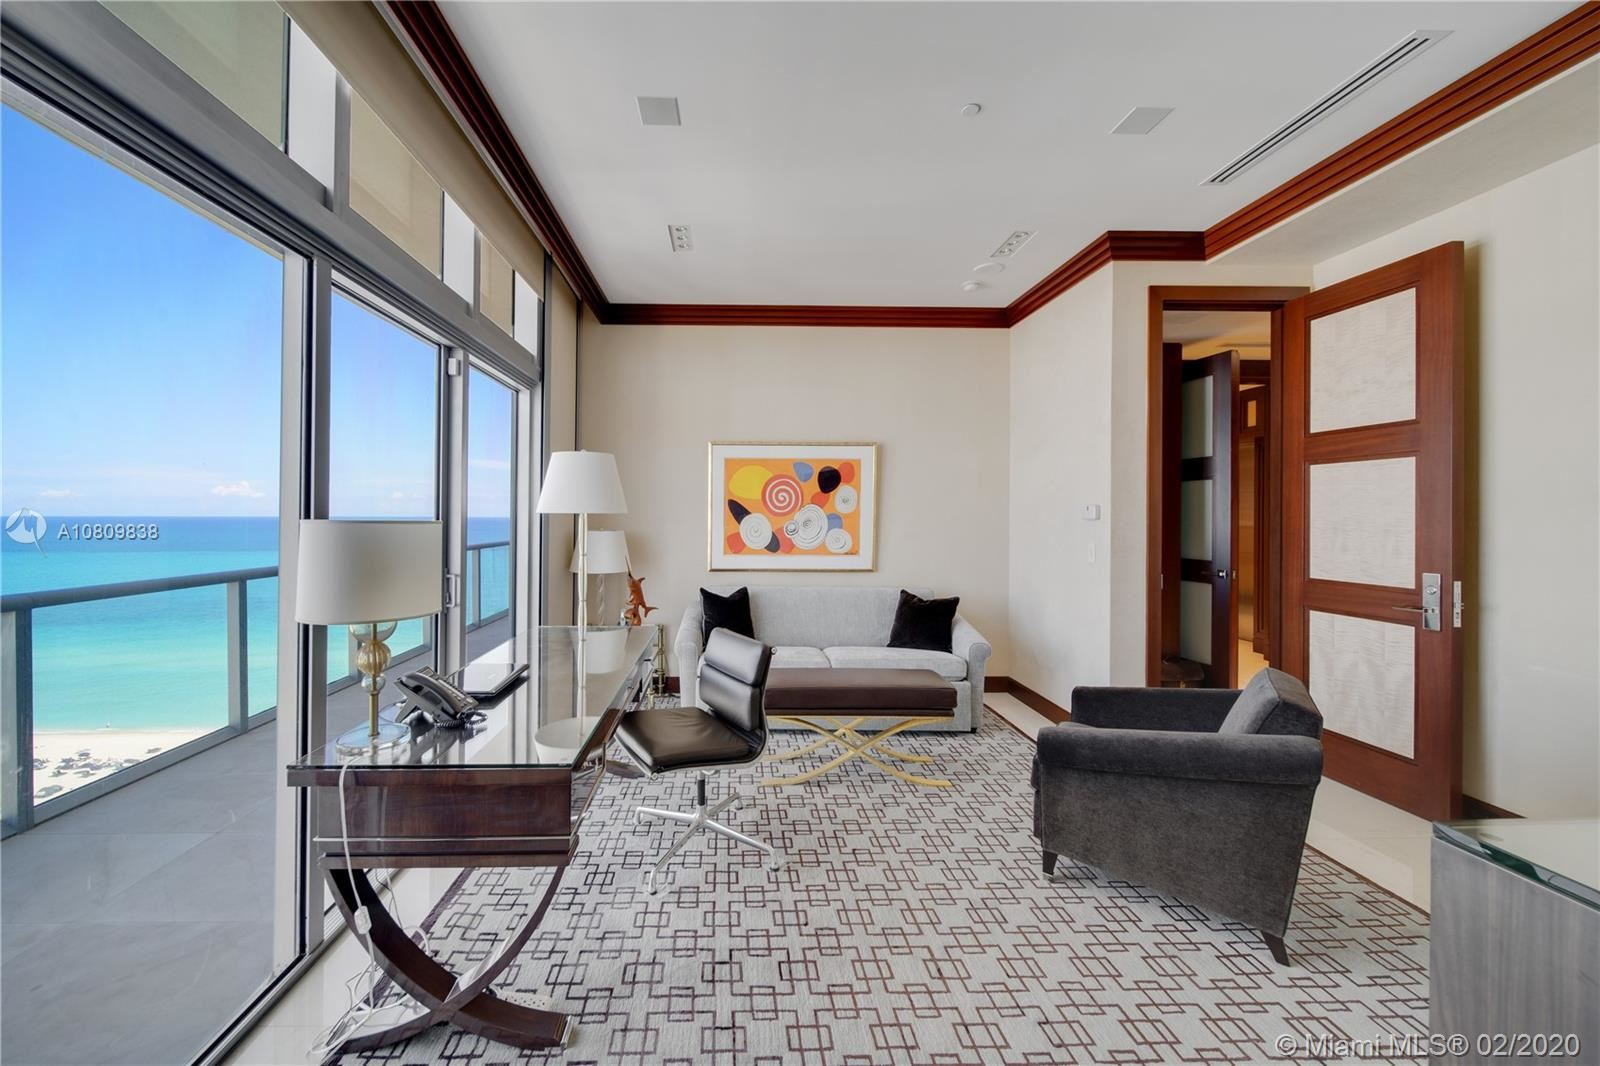 Photo 25 of Listing MLS a10809838 in 3737 Collins Ave #PH-4 Miami Beach FL 33140